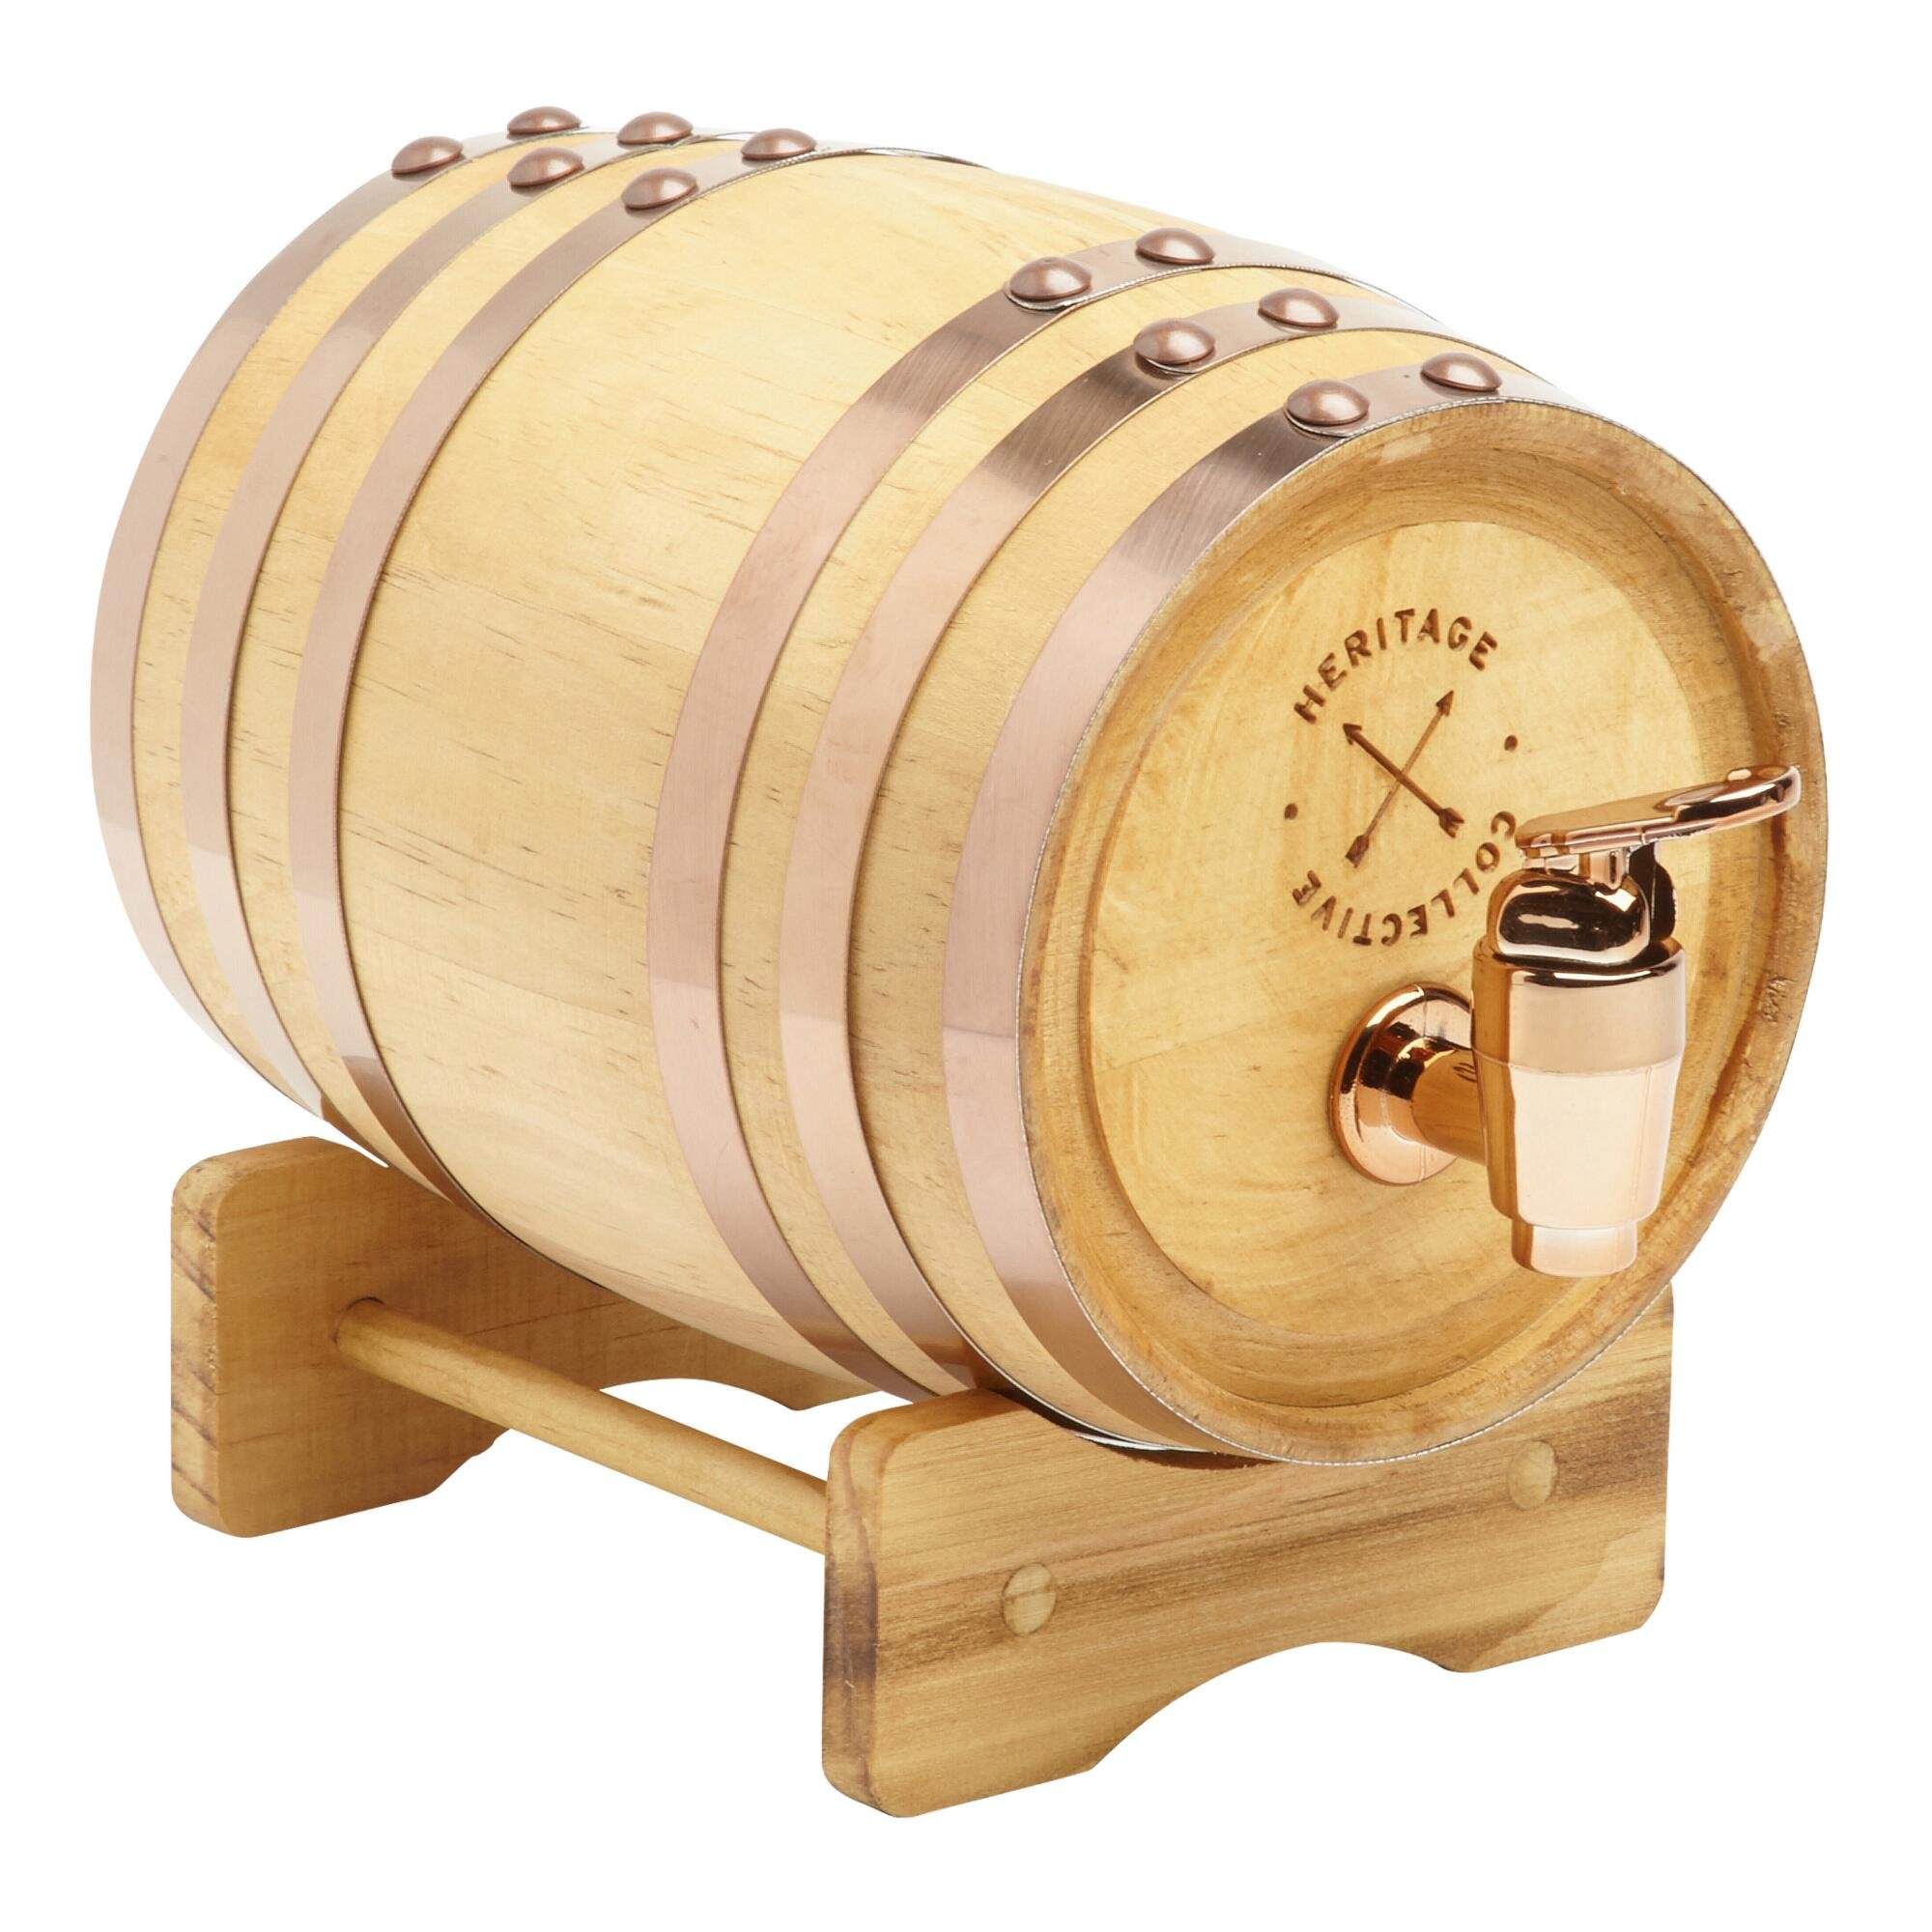 Whiskey Barrel 1l